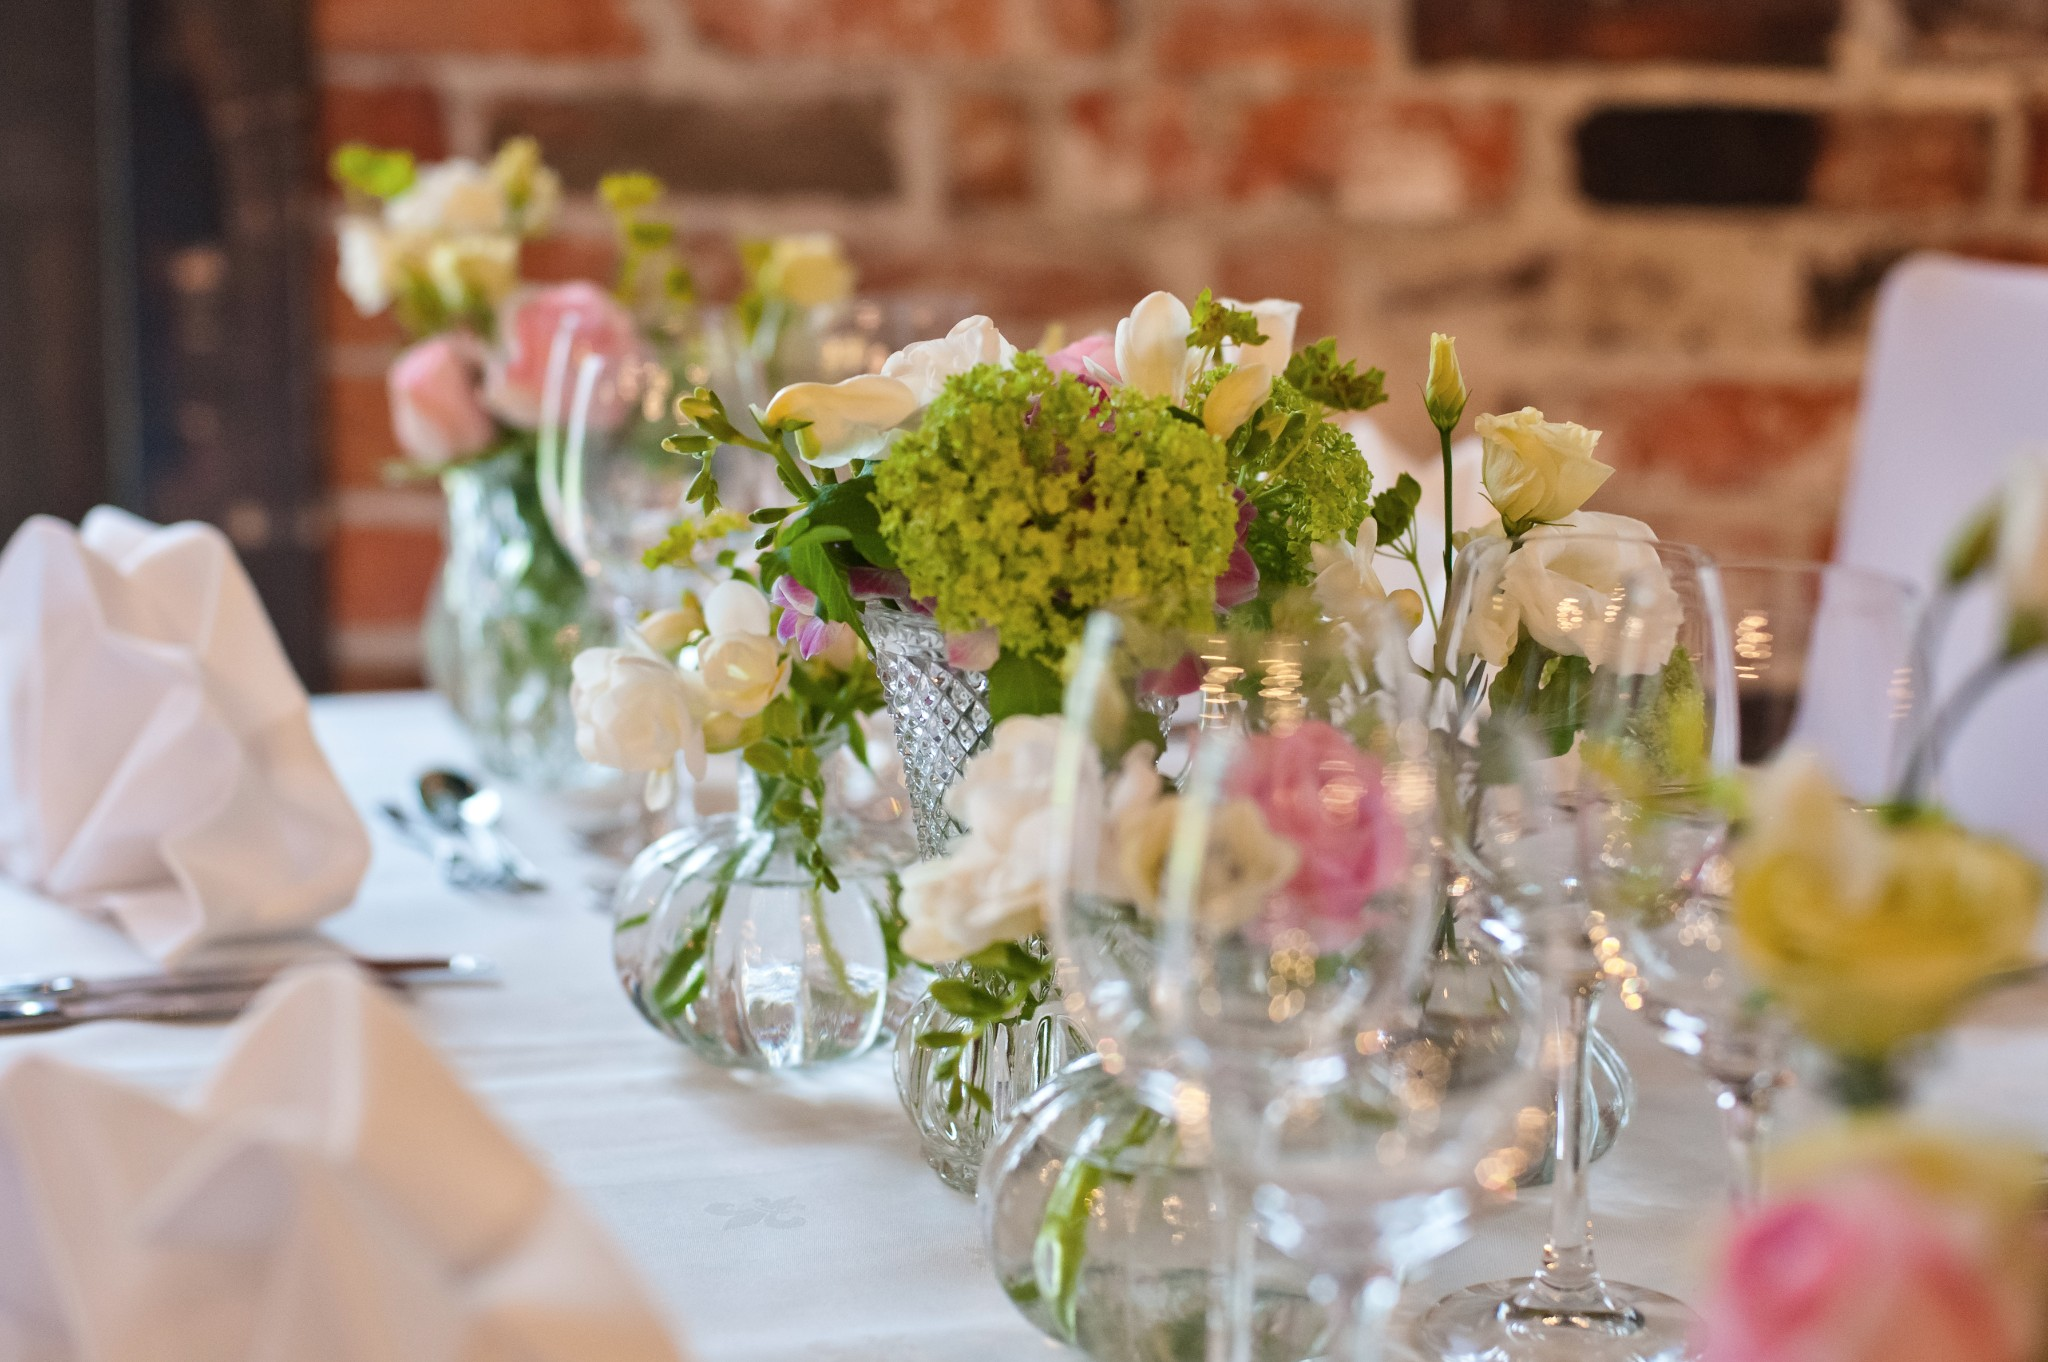 Choose from a selection of beautiful and historic event spaces, each with their own style and character to create an occasion that's as special as your love.